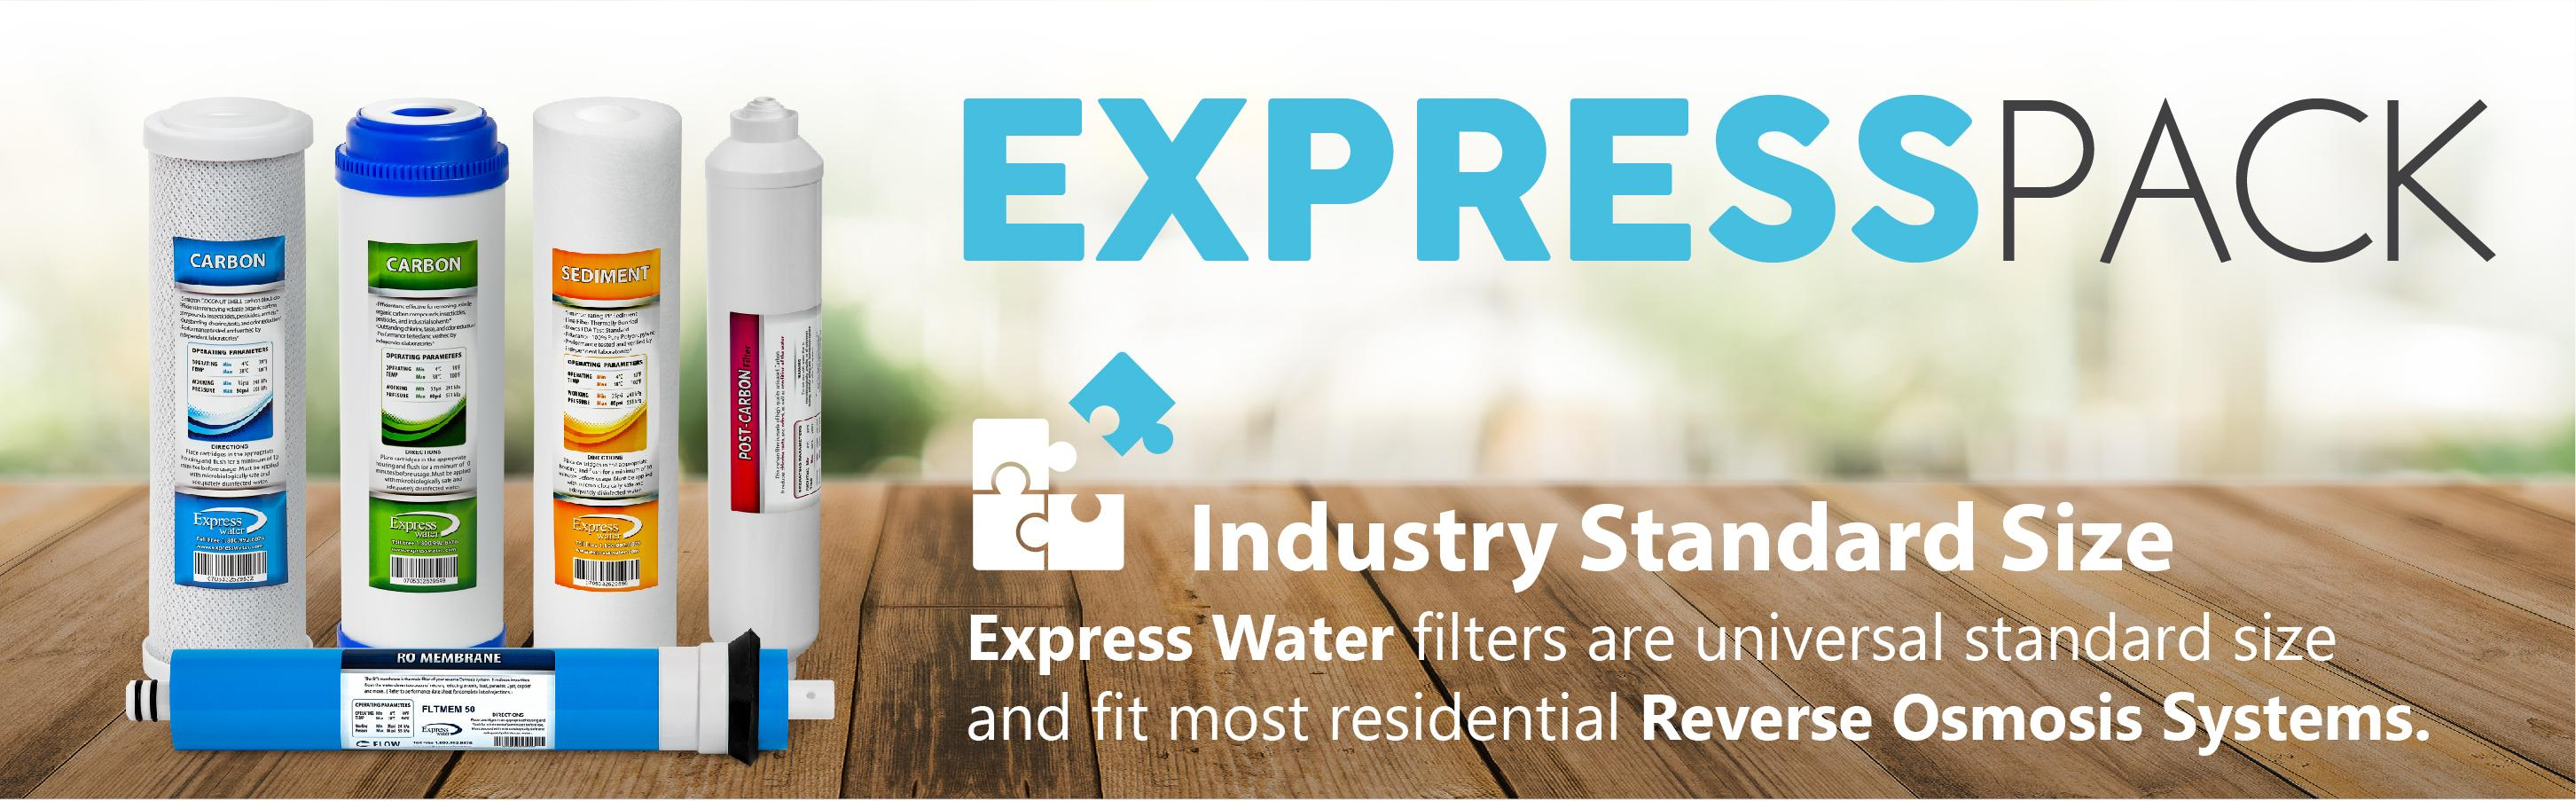 express pack industry standard size water filters reverse osmosis systems set kit full ro 50 gpd - Reverse Osmosis Water Filter